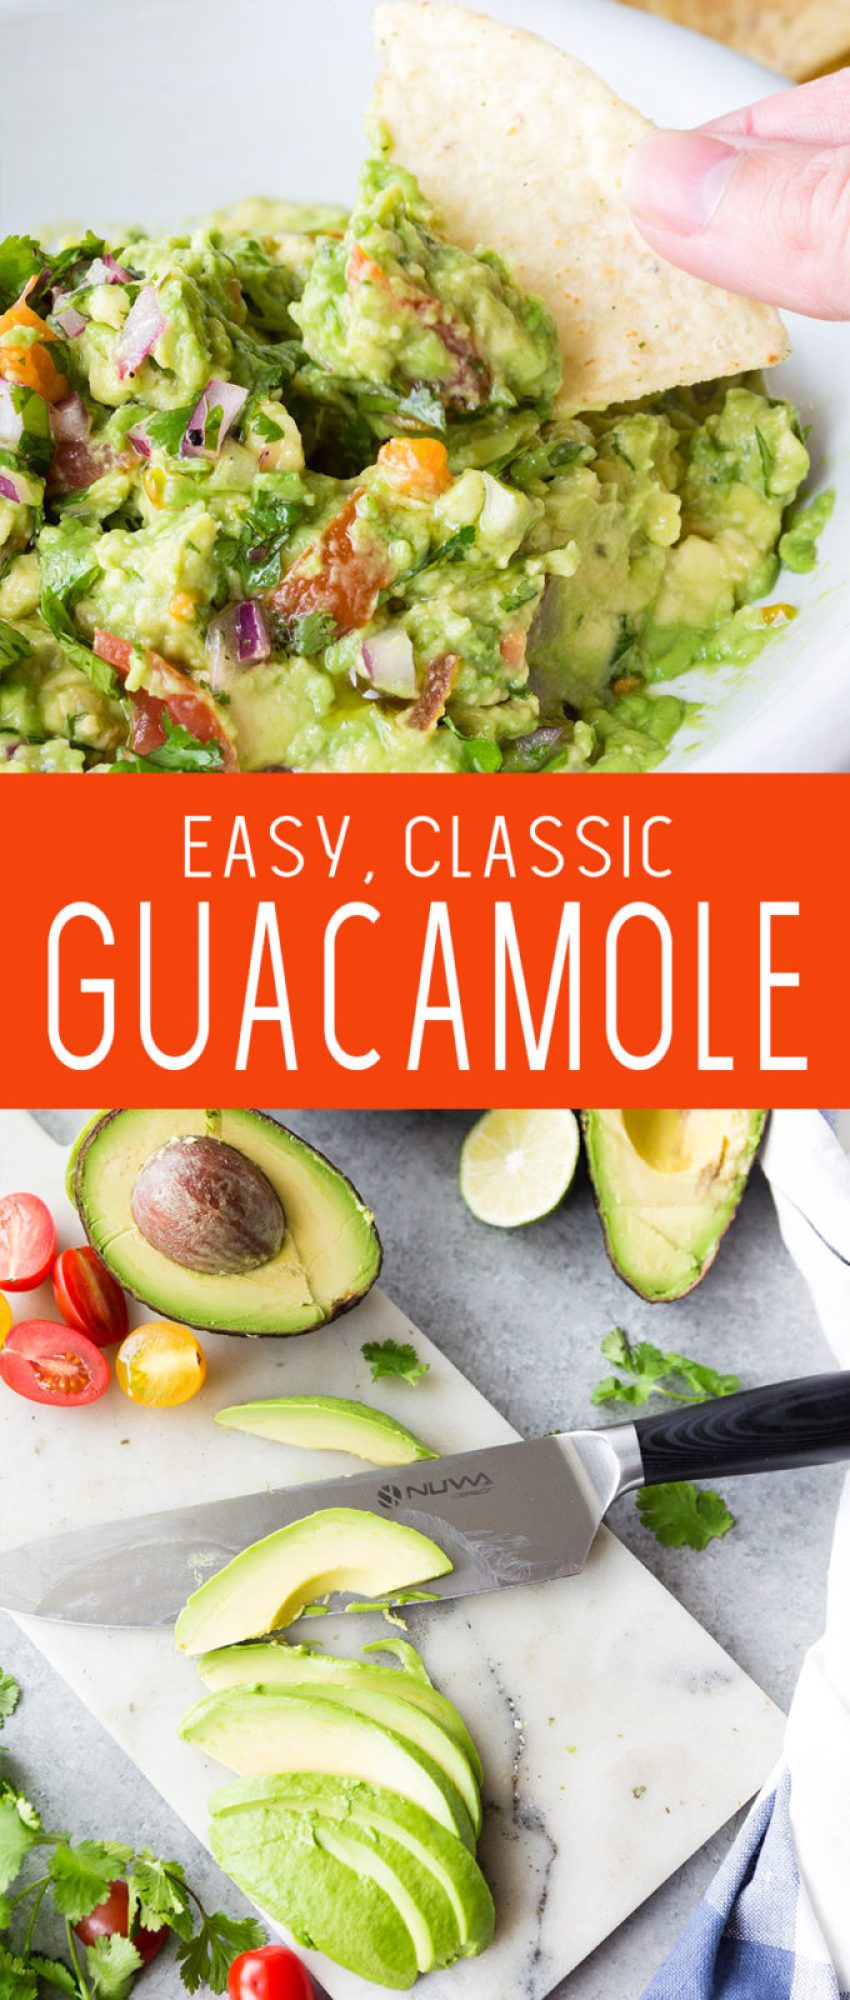 Easy Classic Guacamole, this Guacamole is made with delicious avocado, cilantro, and onion.